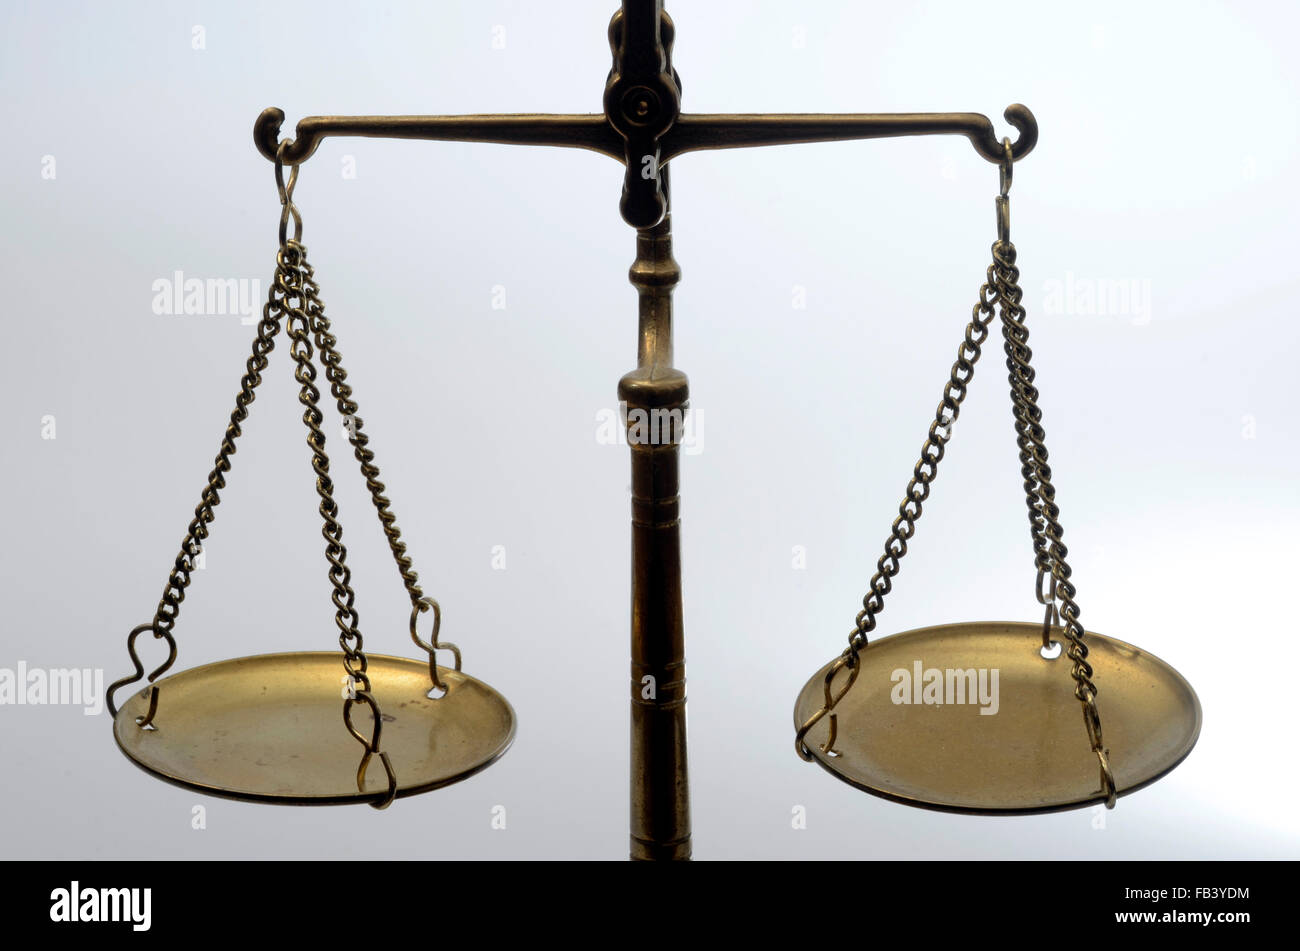 Weighing Scale High Resolution Stock Photography and Images - Alamy